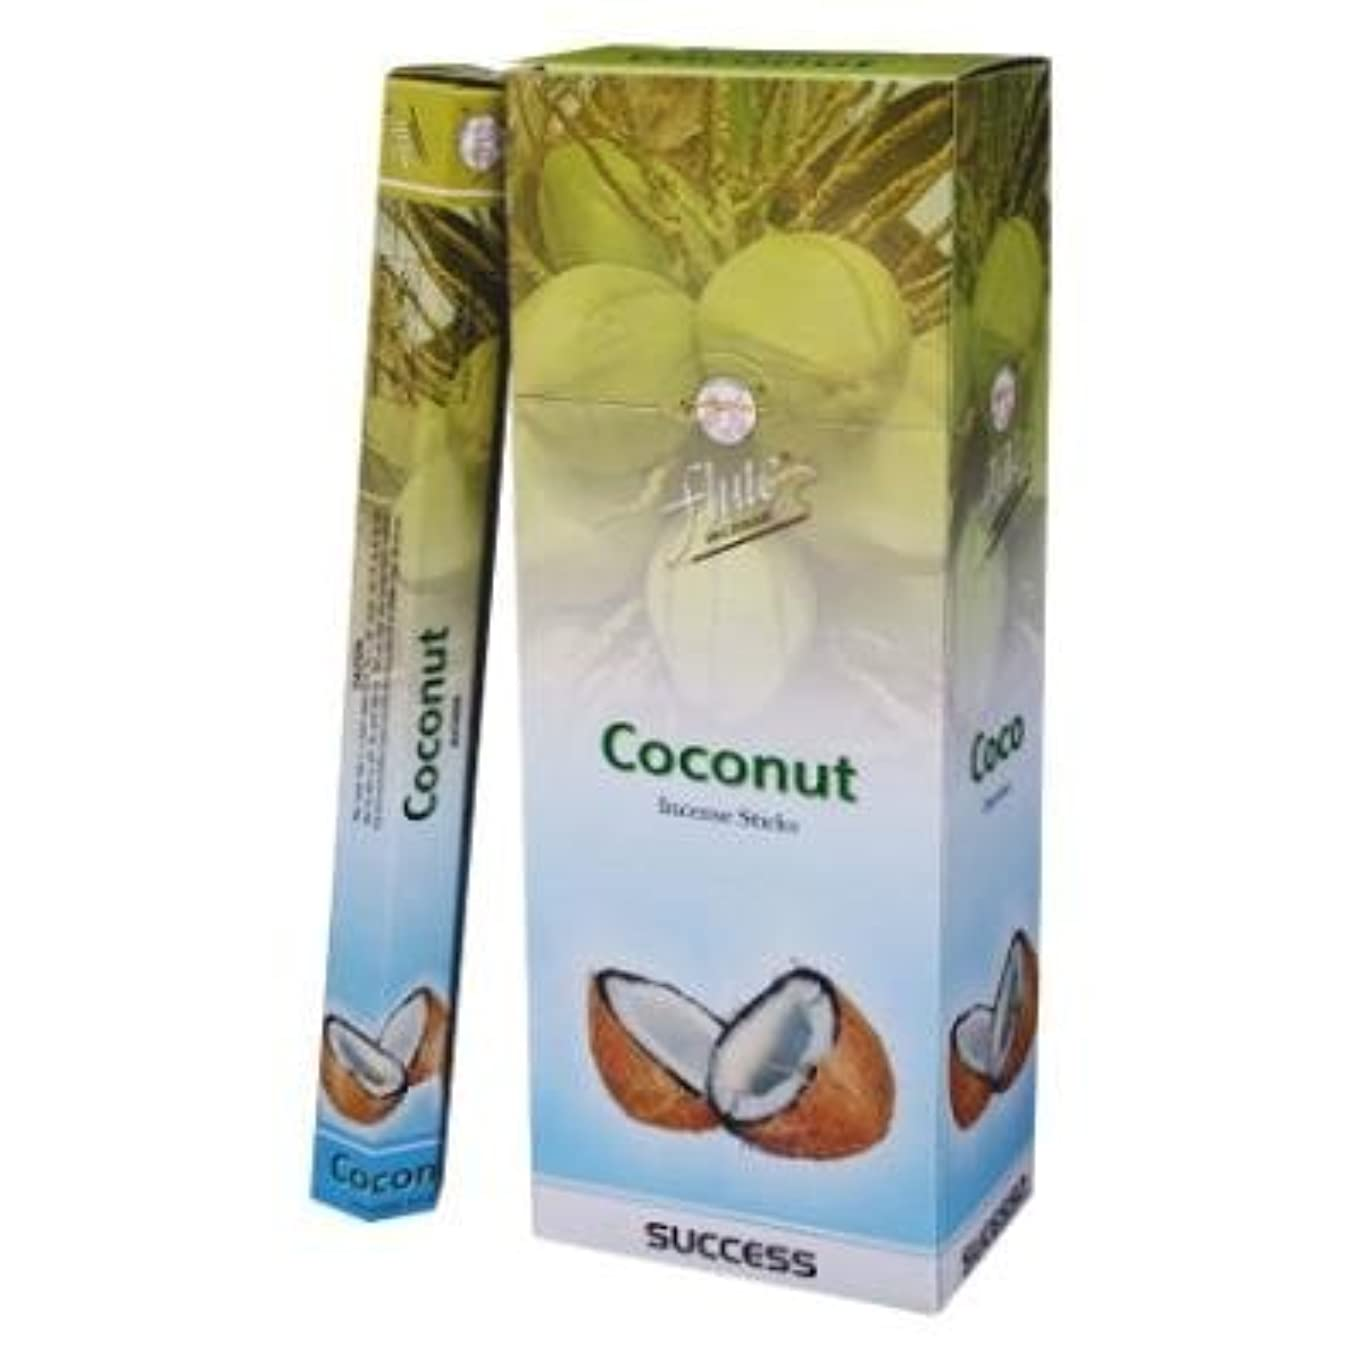 森置き場現れるFlute Coconut Hex Incense Sticks - 20 Sticks(Single Pack) by Flute Incense [並行輸入品]